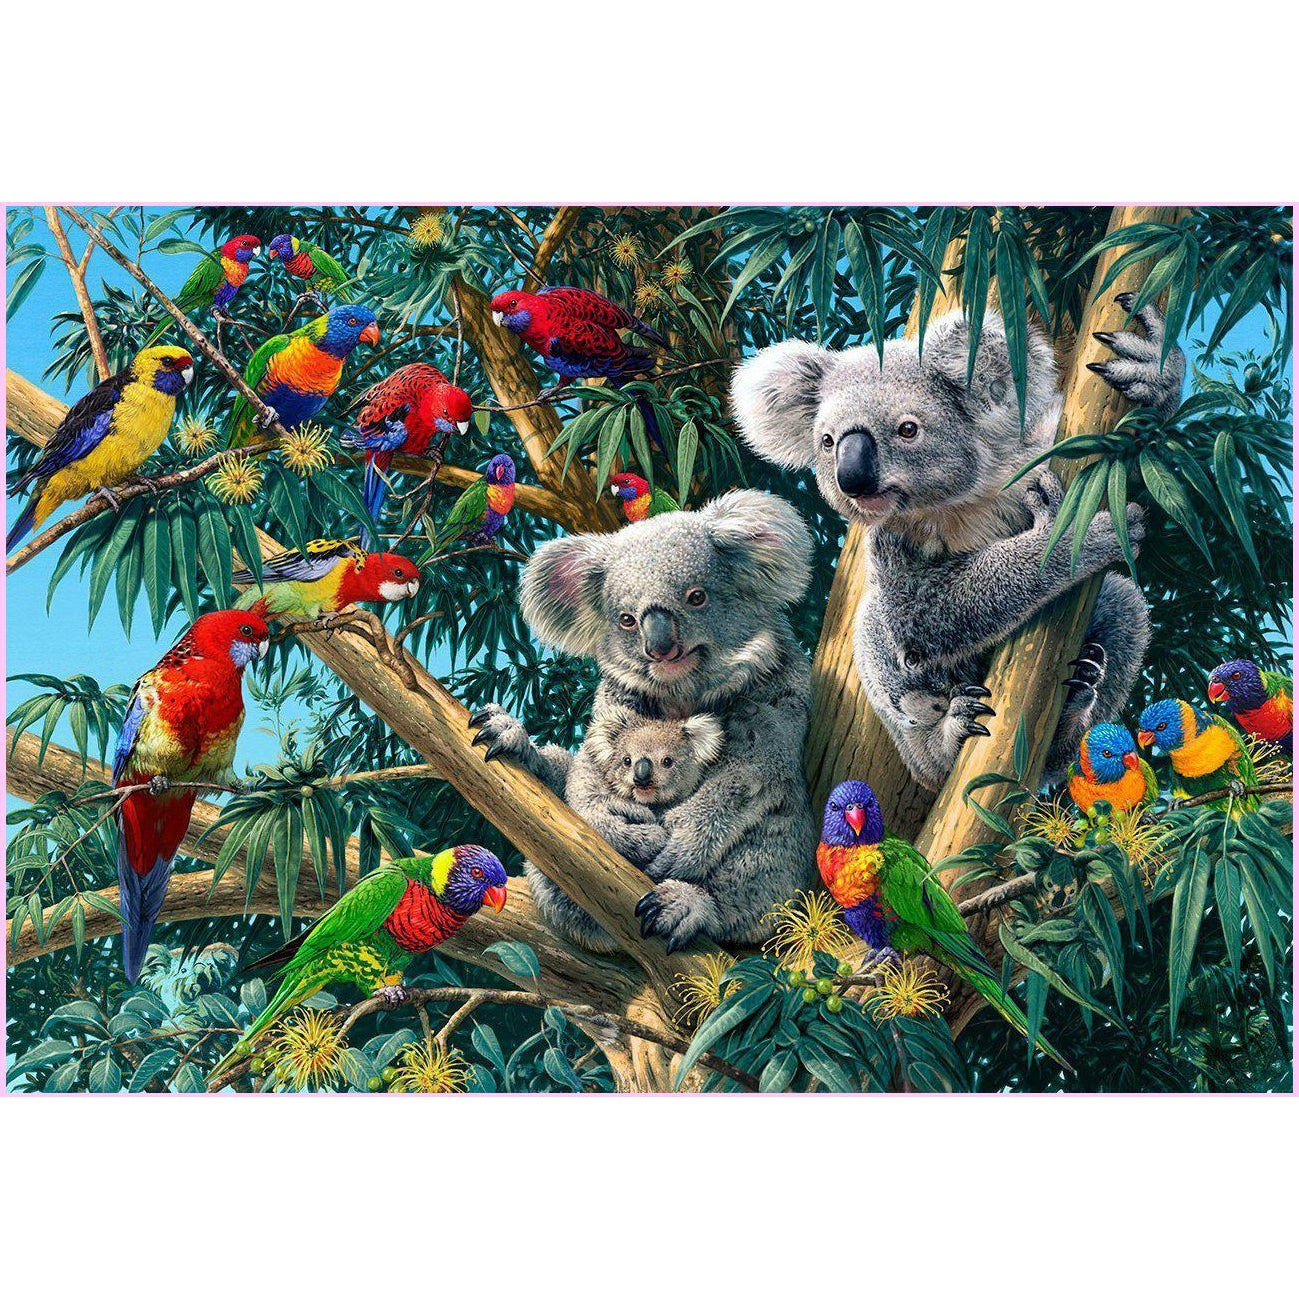 Koala Outback-Diamond Painting Kit USPS-25x40cm (10x16 in)-Square-Heartful Diamonds